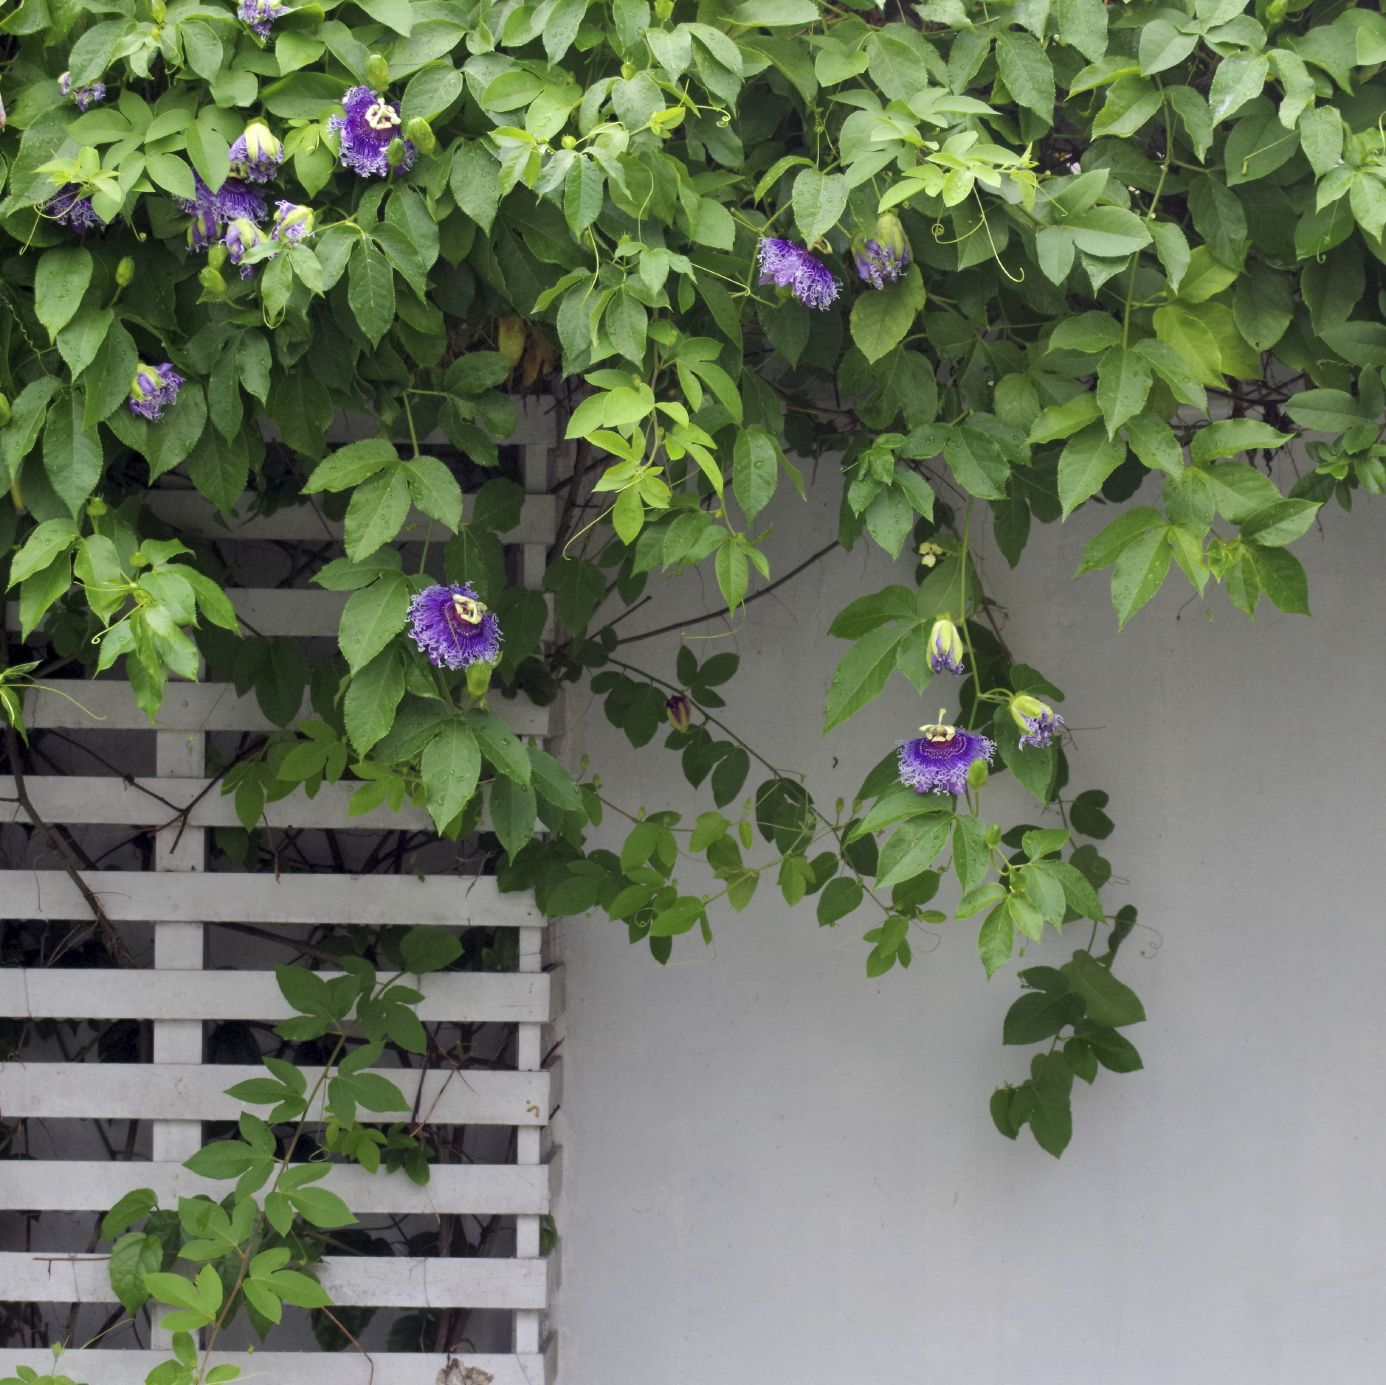 Passion Vines Are Tropical To Semitropical Flowering And Fruiting Plants That Need Pruning And Training By Th Flowering Vines Passion Vine Passion Flower Plant